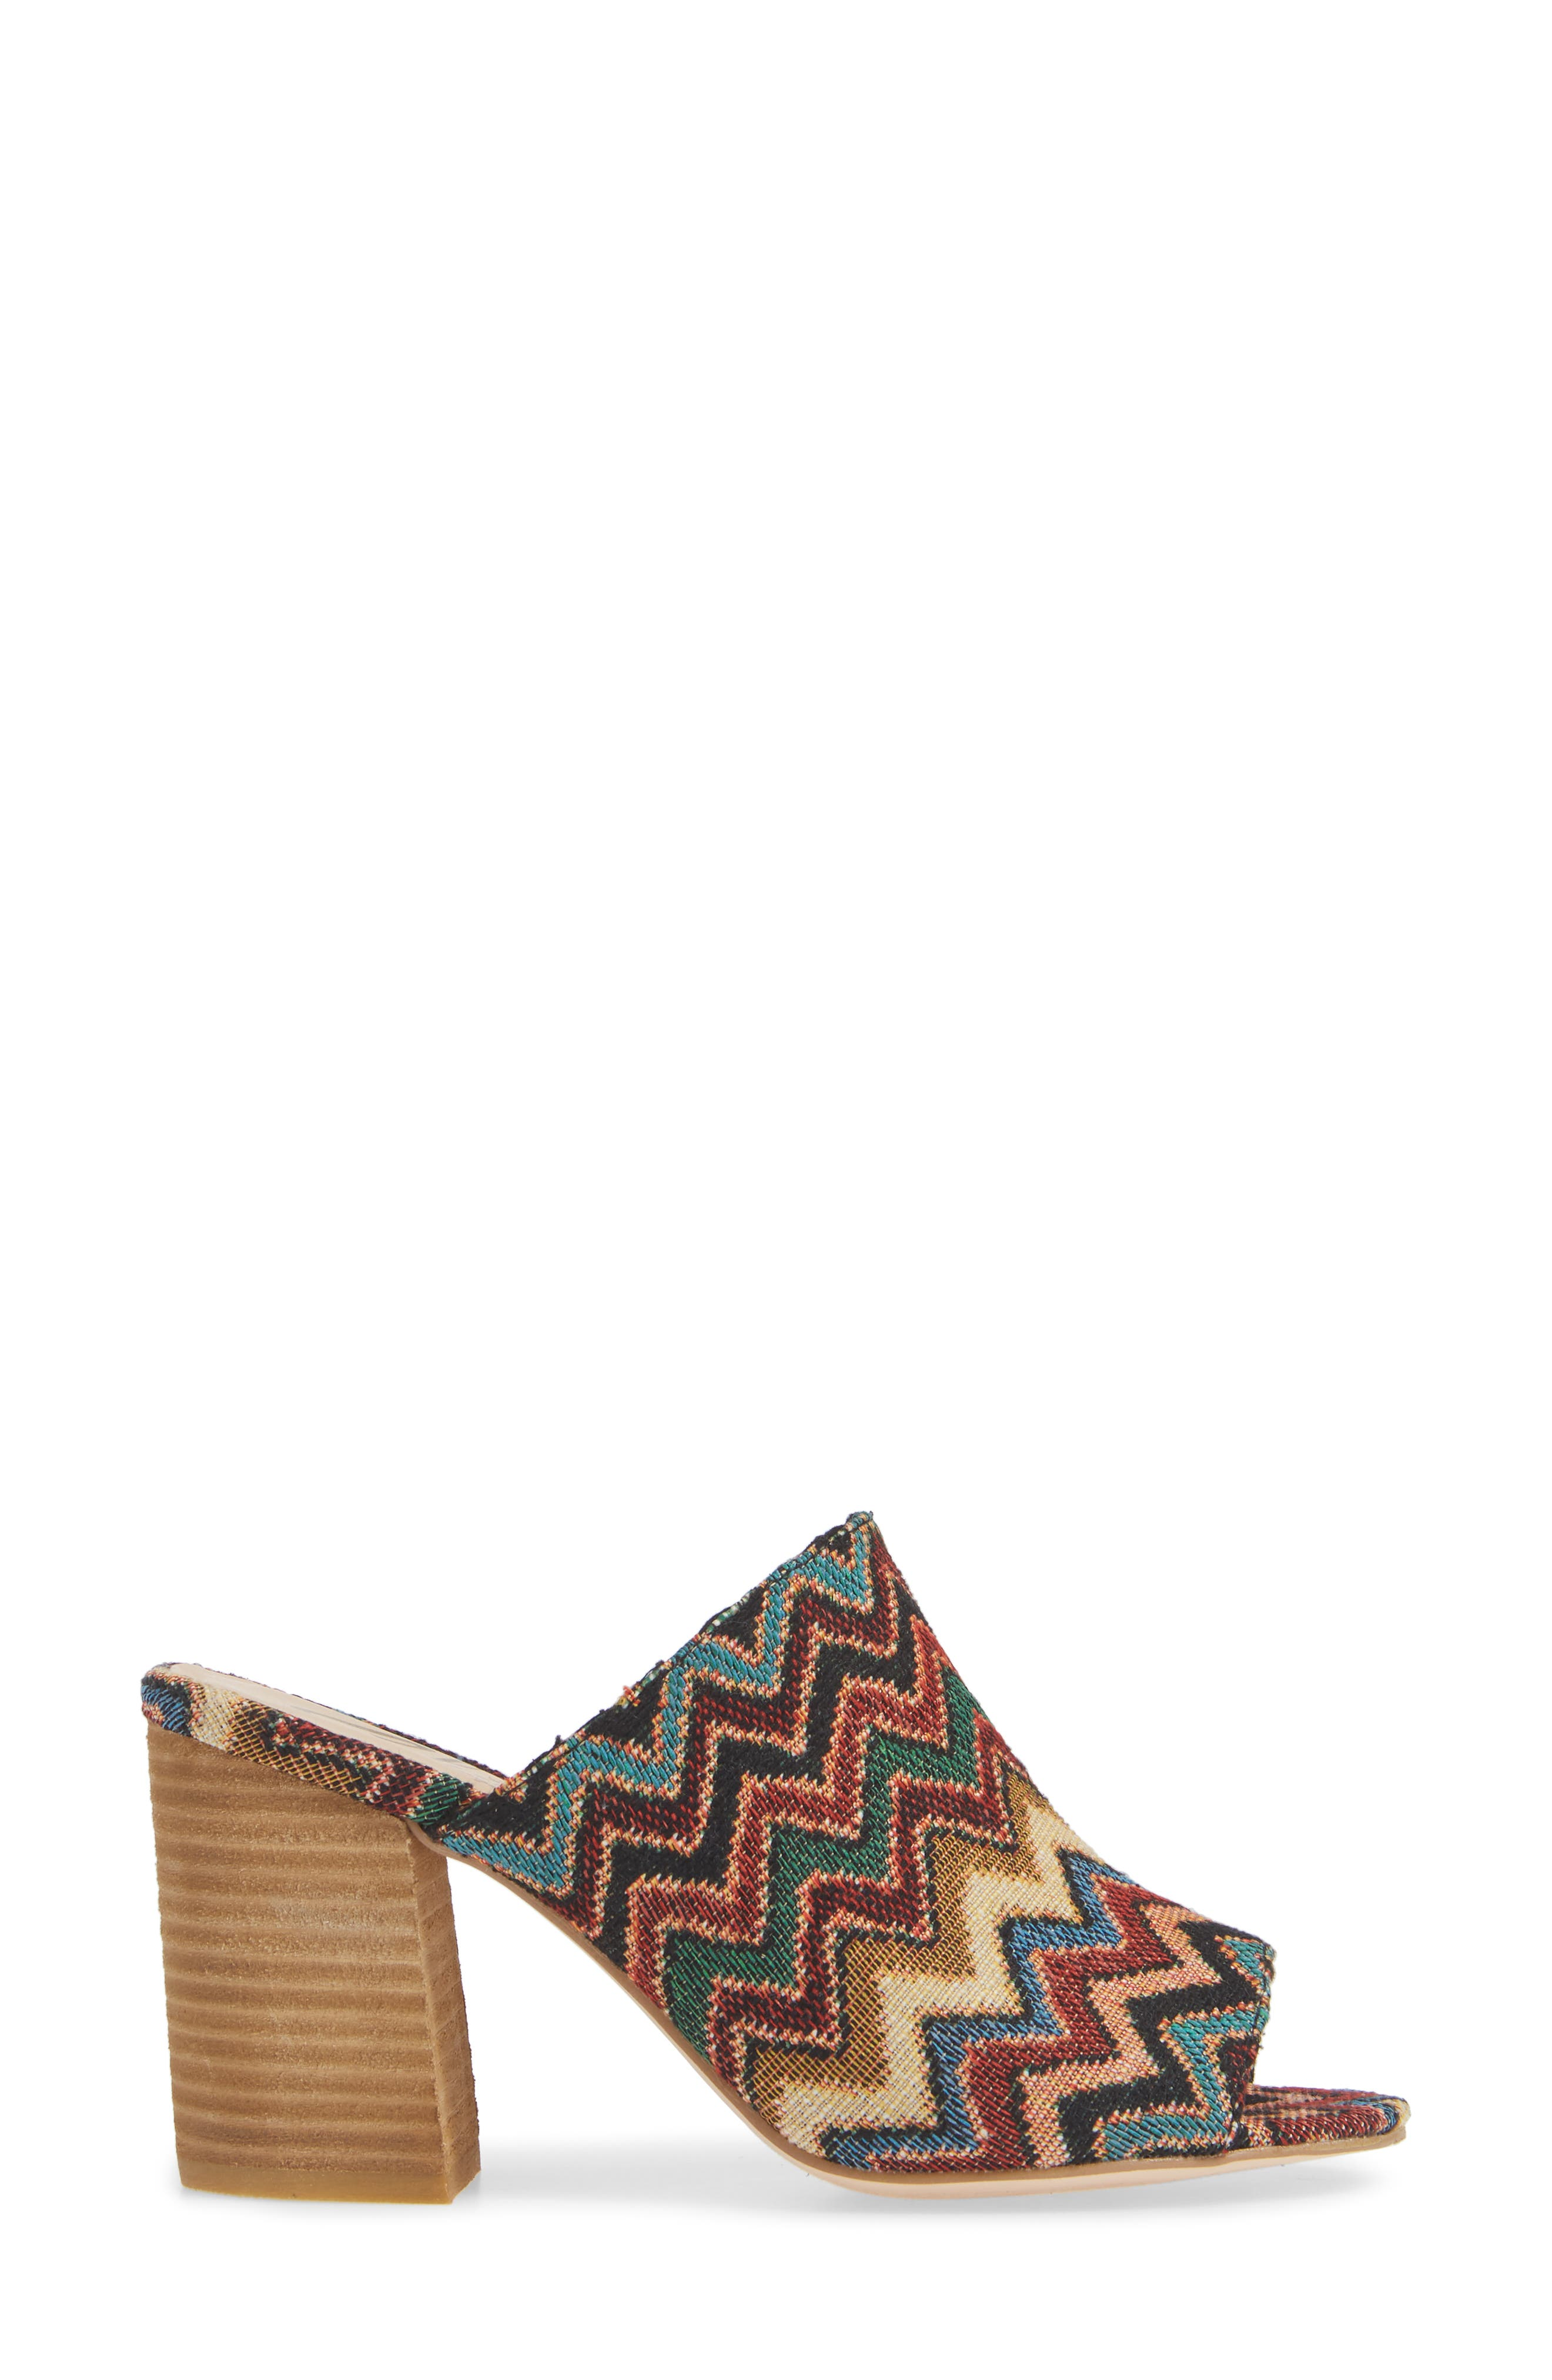 Helena Sandal,                             Alternate thumbnail 3, color,                             MULTICOLOR FABRIC